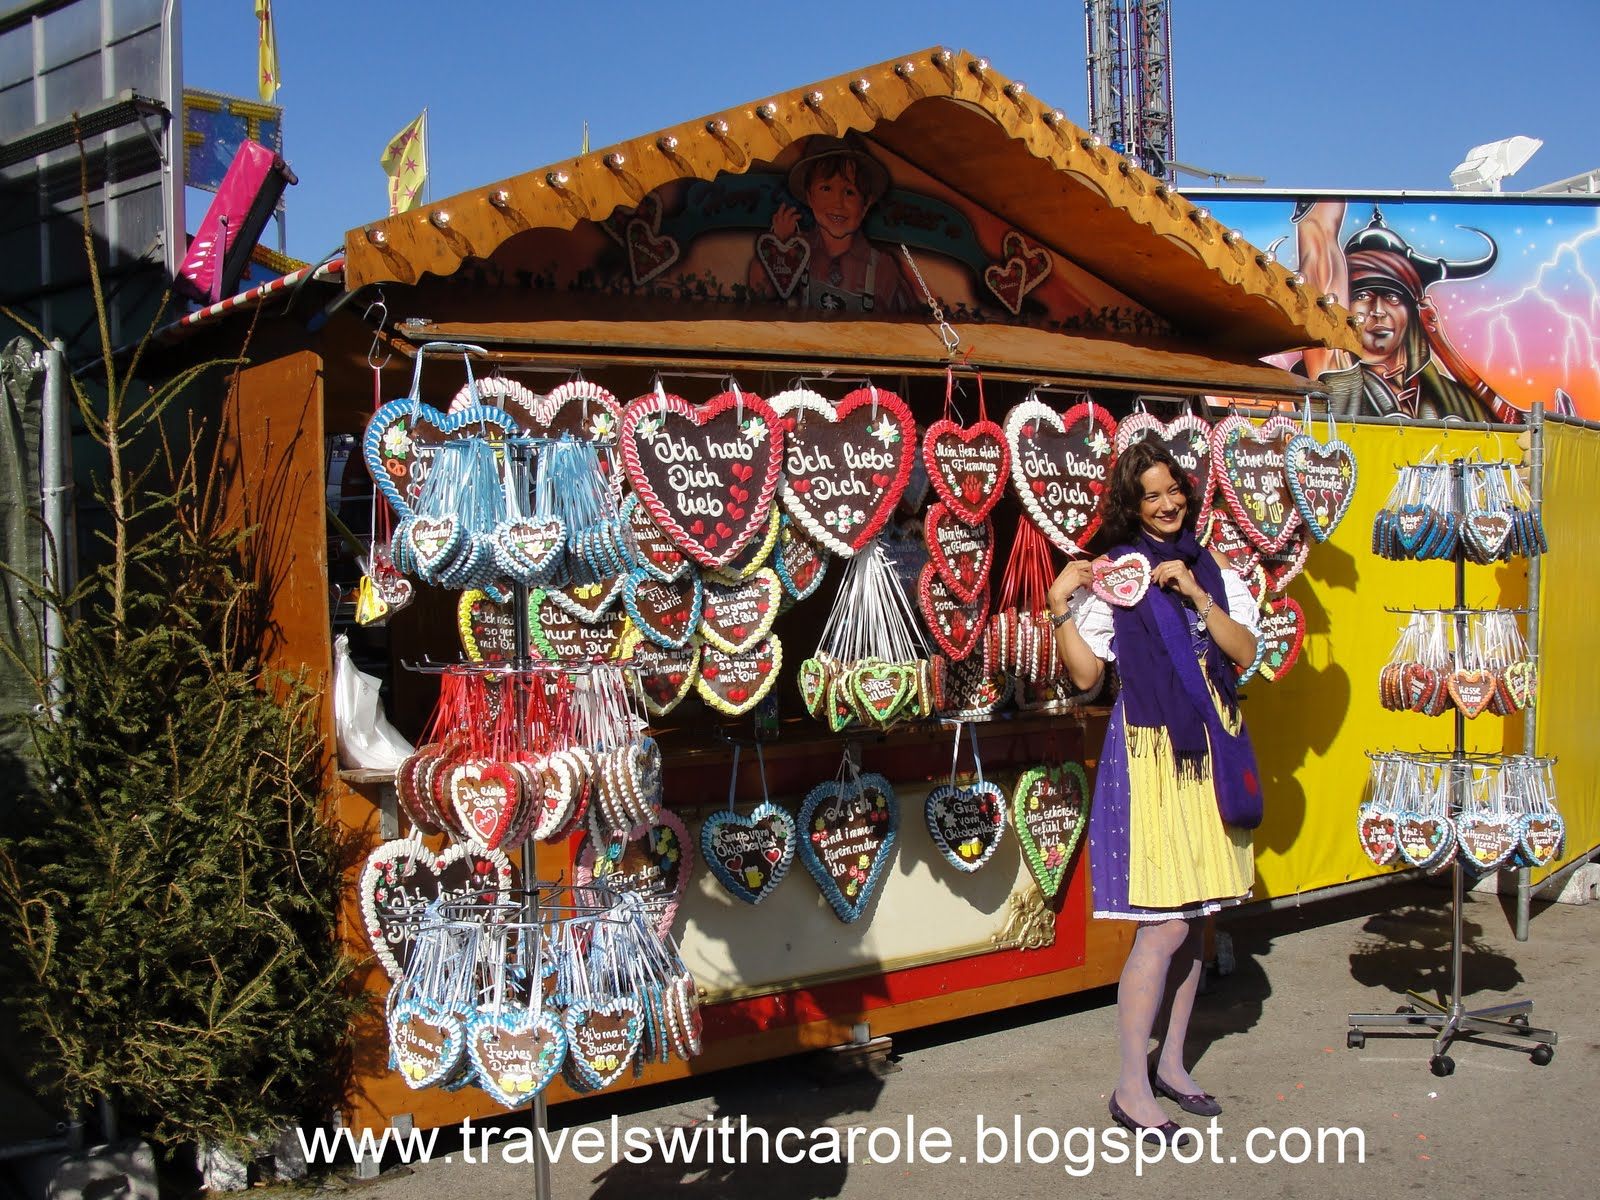 Travels With Carole: Things to Do: Oktoberfest, Munich, Germany